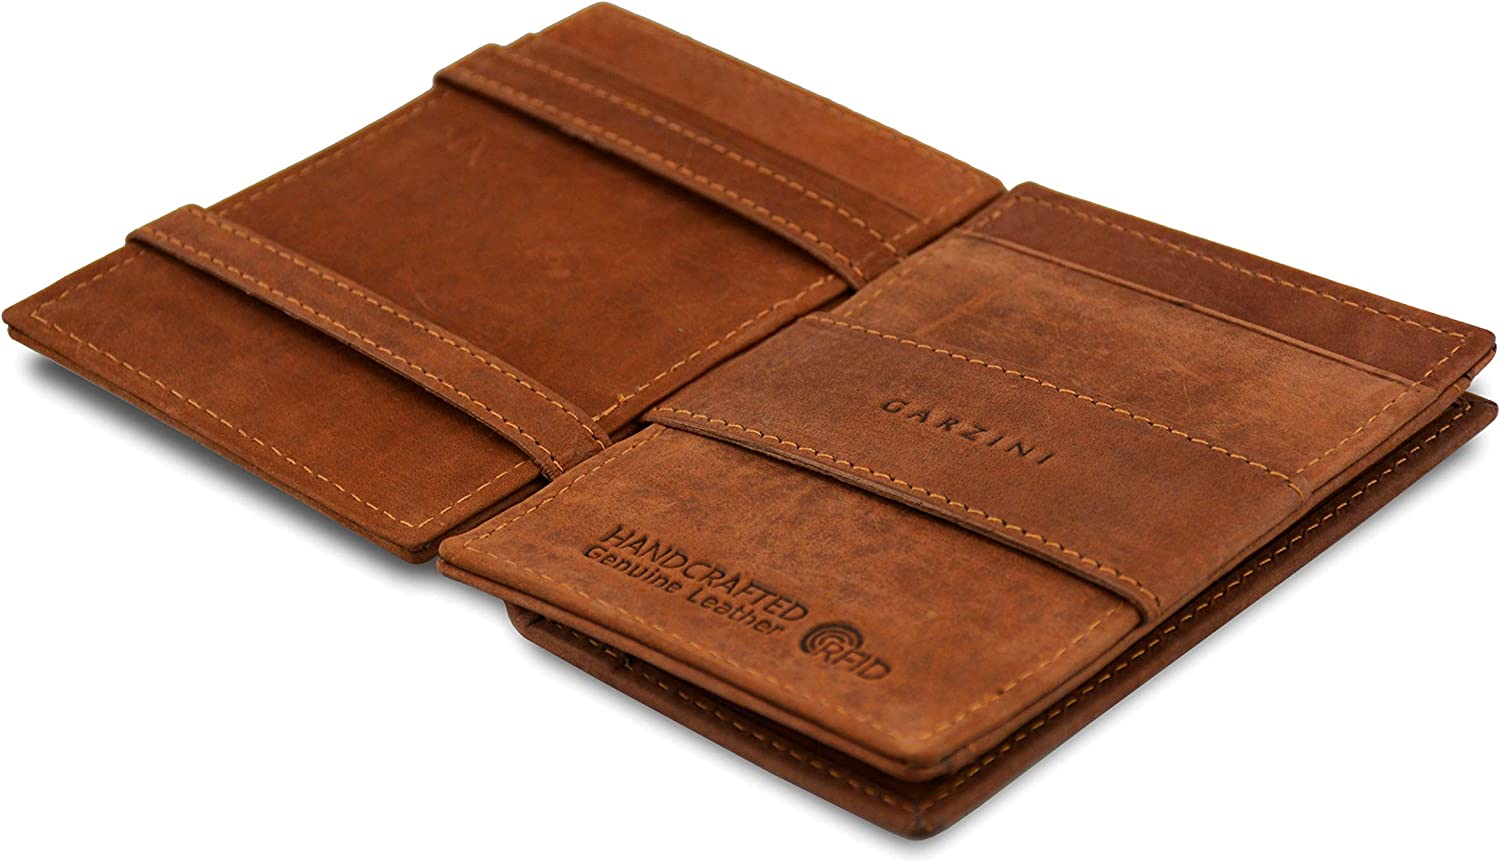 Garzini Magic Wallet with coin pocket, Minimalist Wallet with RFID card holder, Leather Wallet for 7 cards, Jave Brown